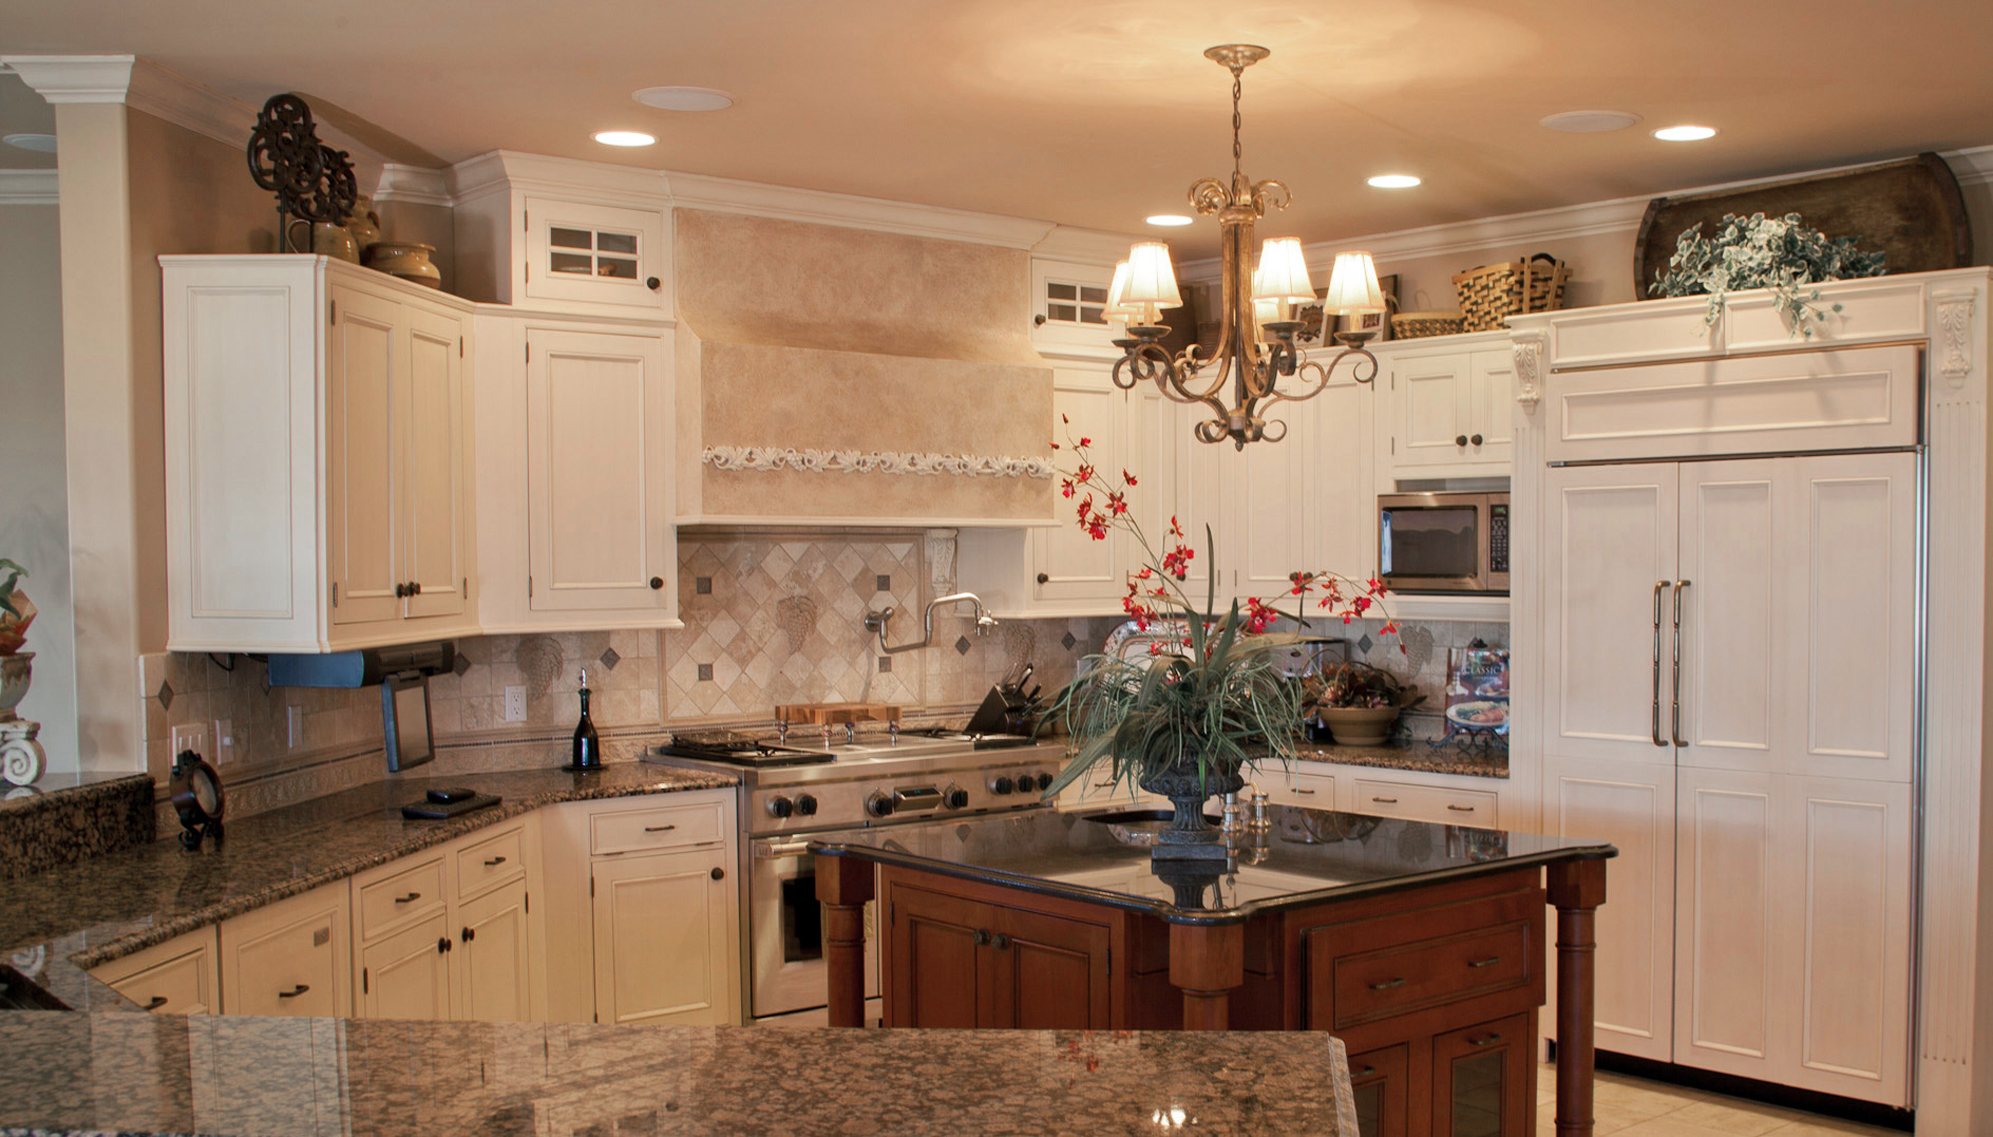 Single family kitchen